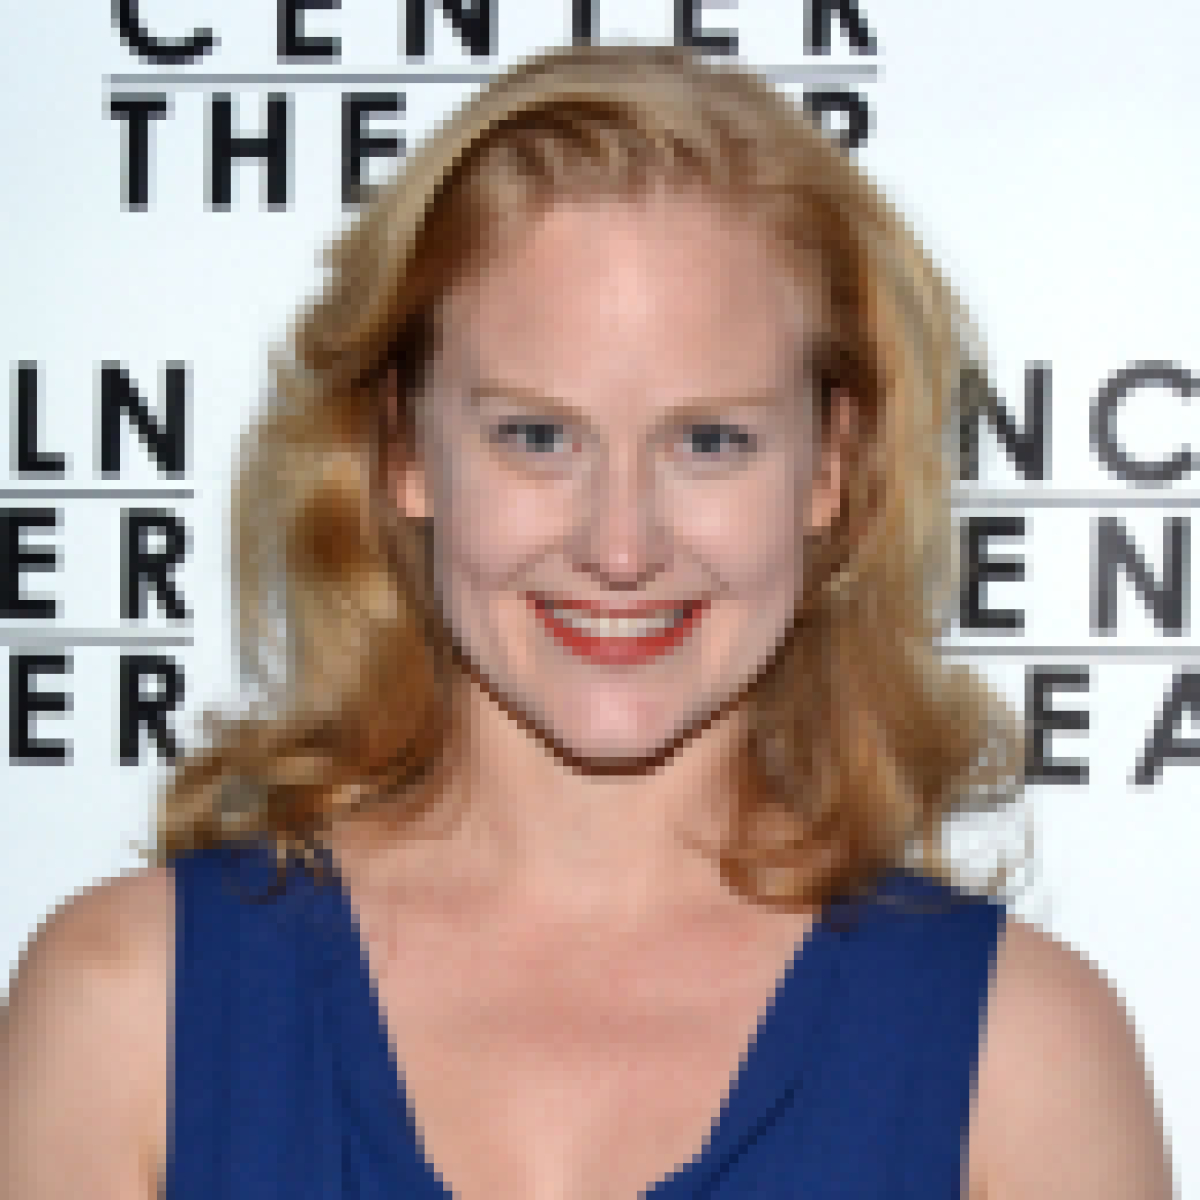 Heidi Armbruster, Keira Naughton, And More To Star In The